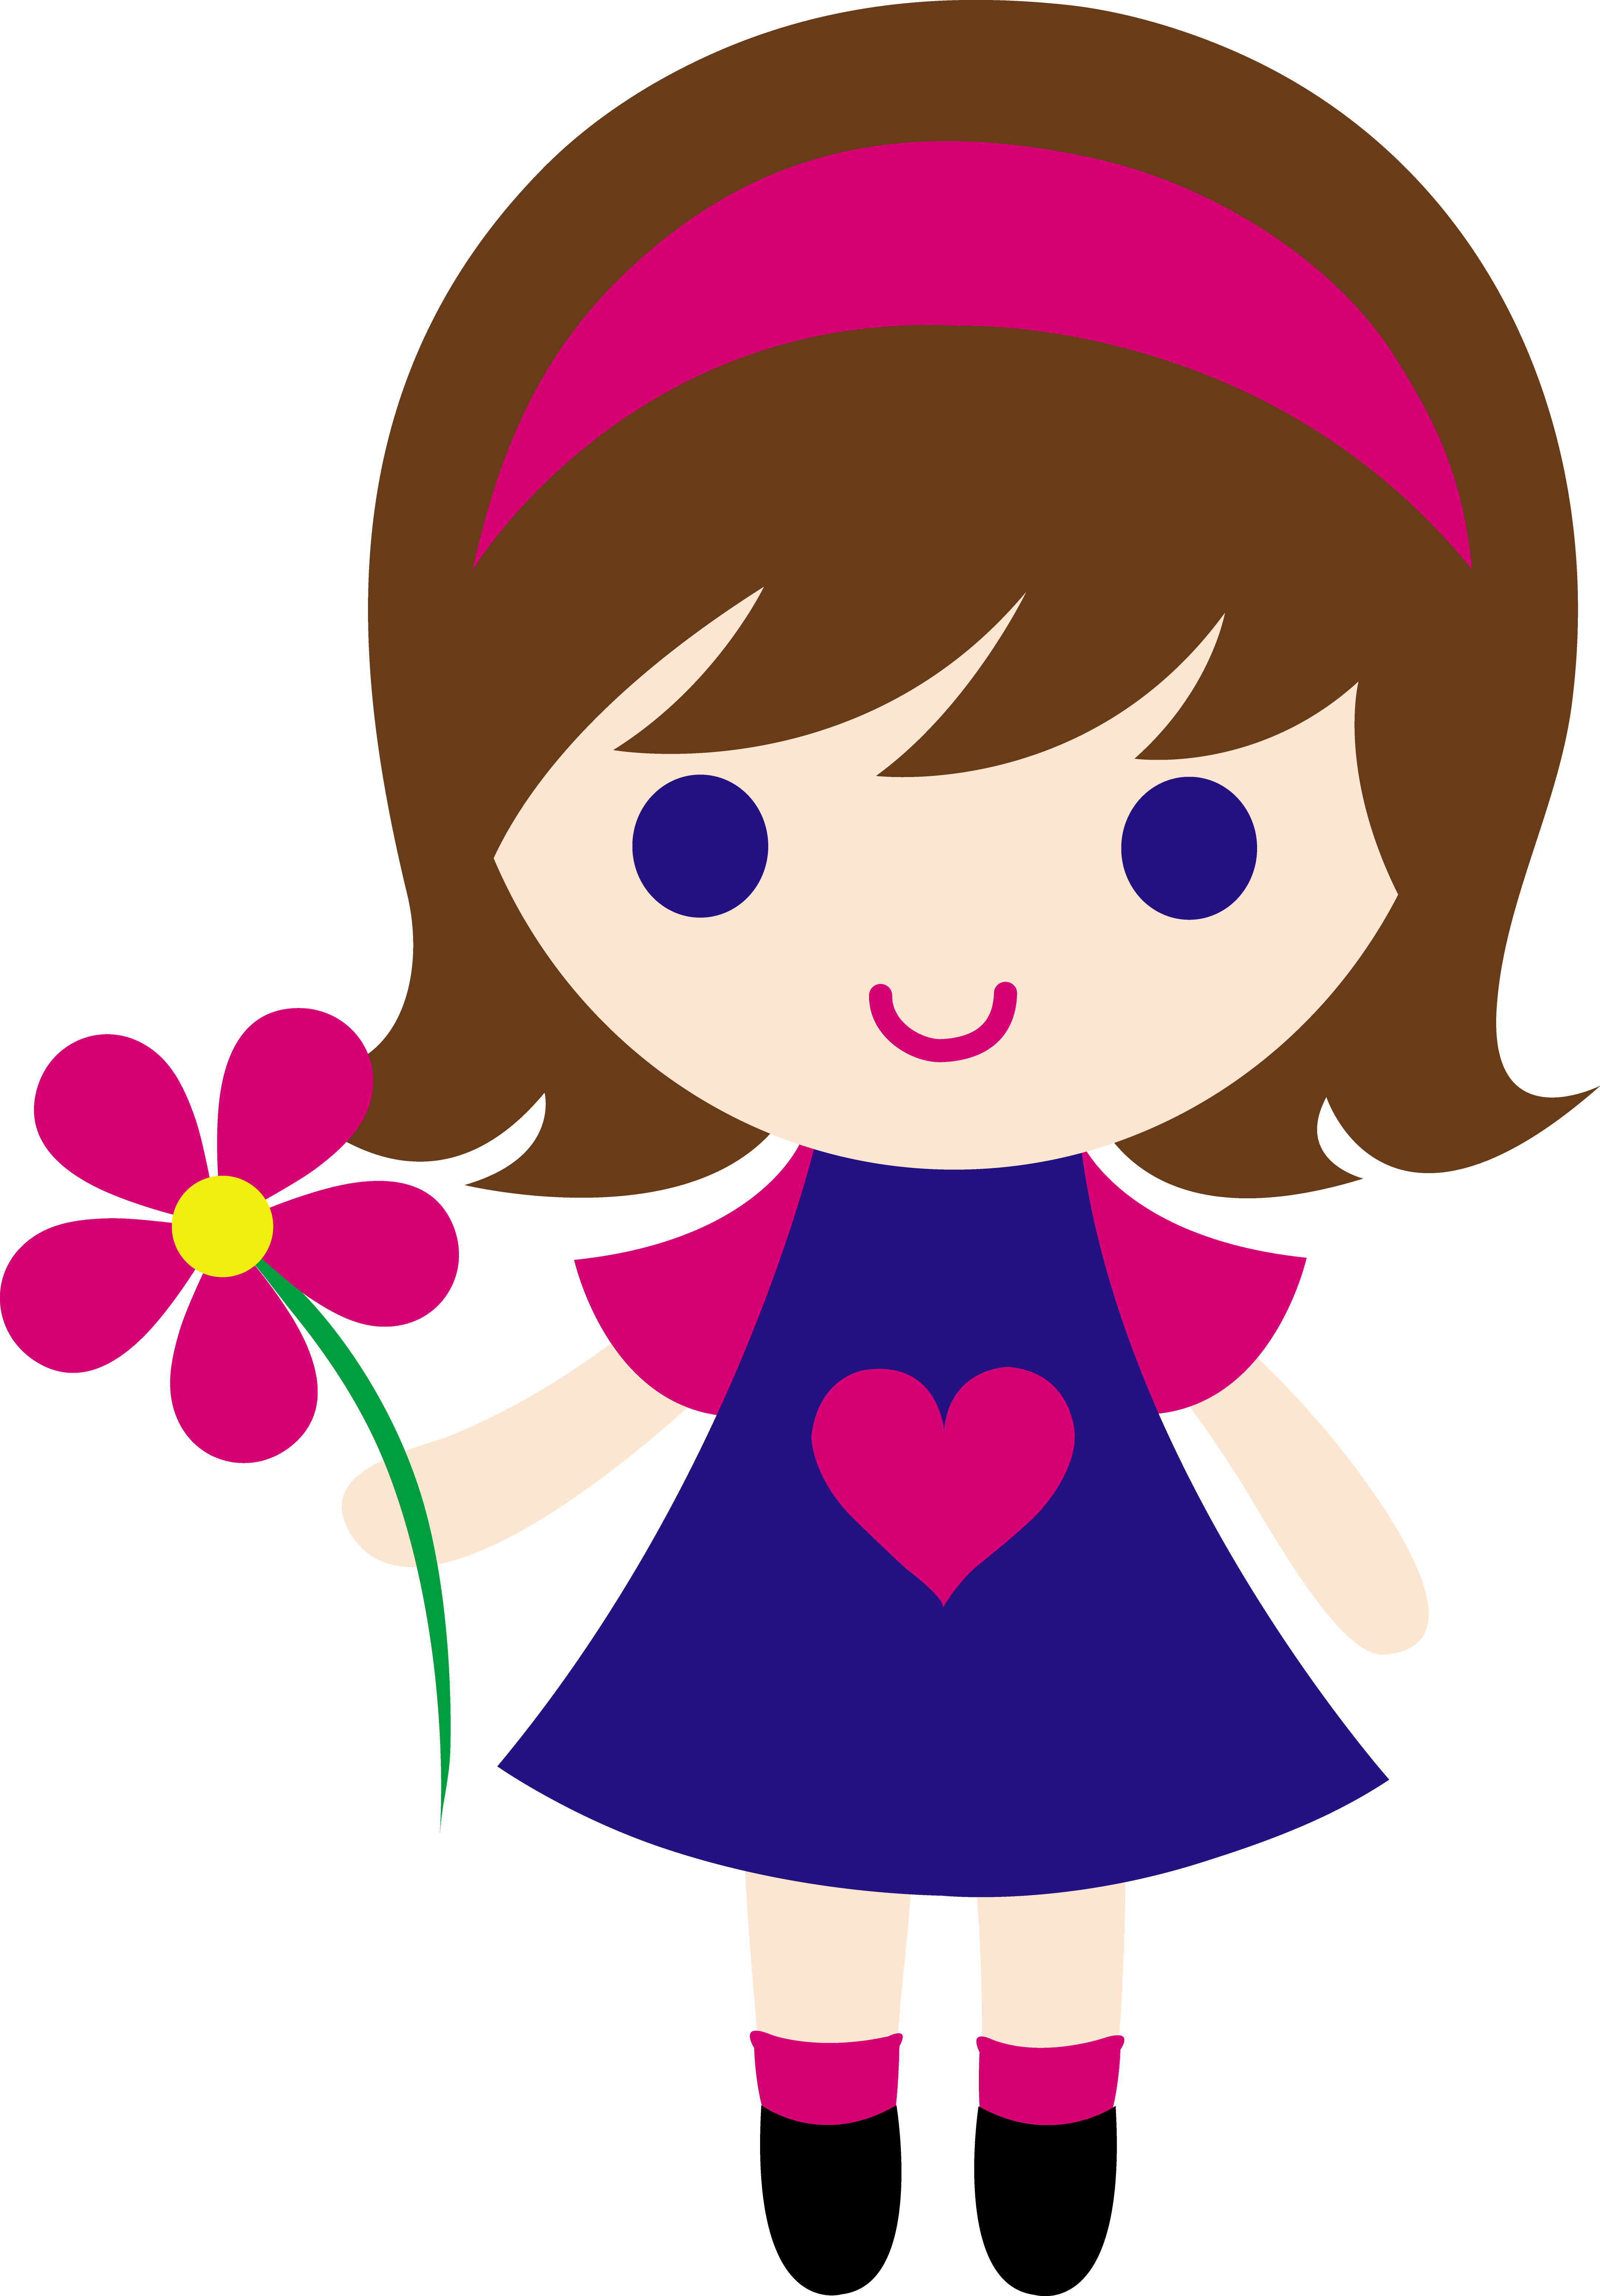 girl clipart animated